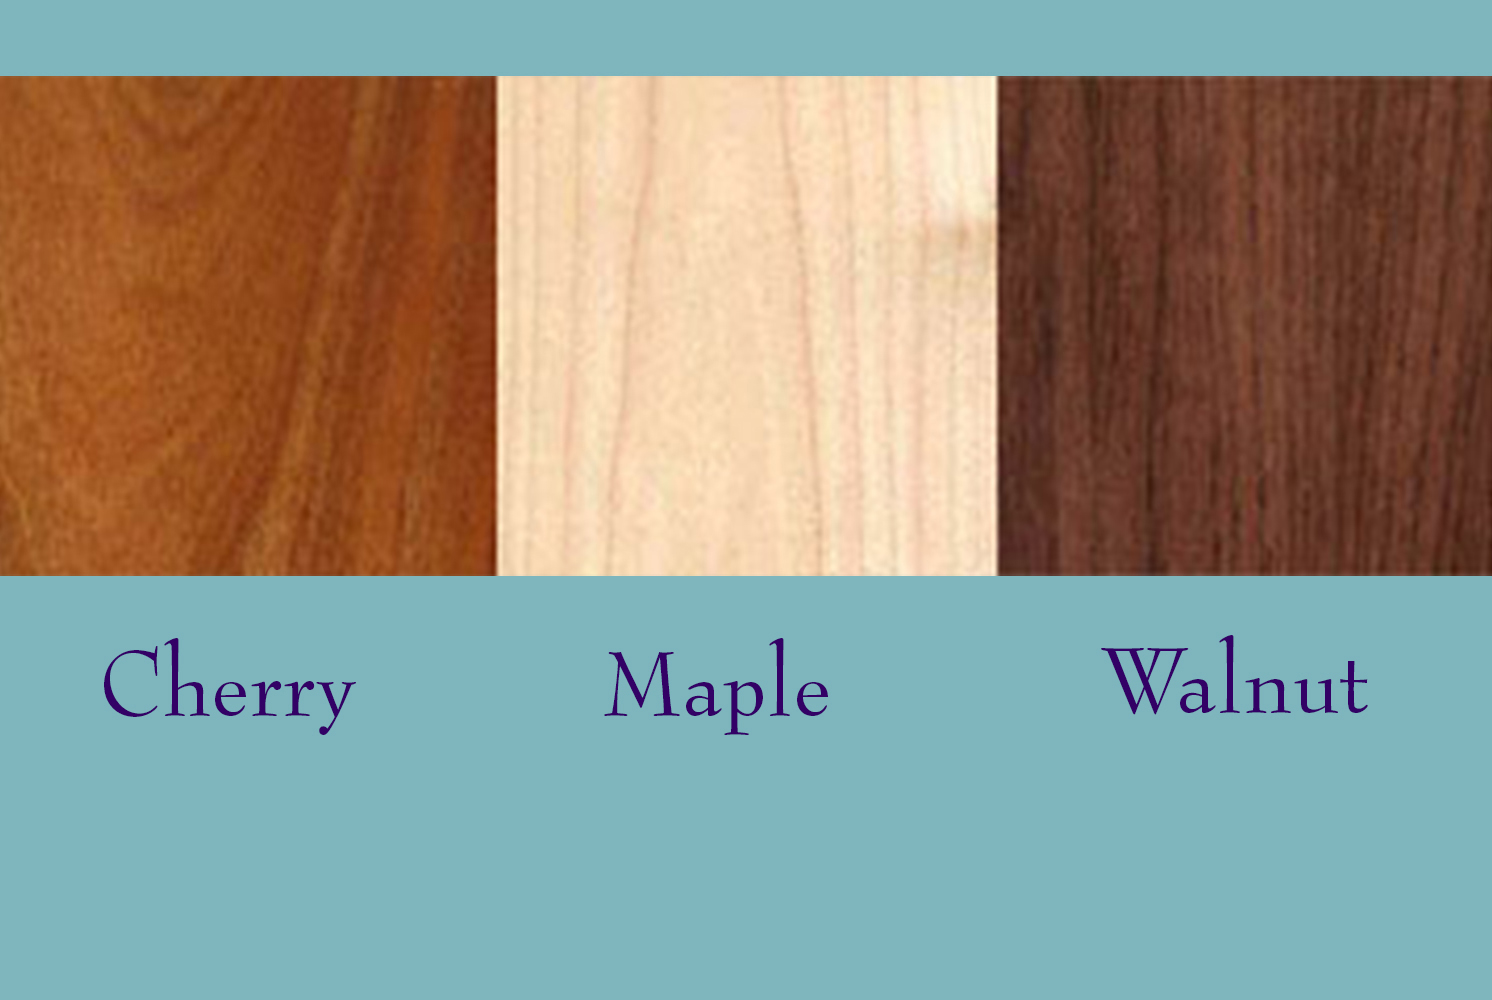 The three locally-sourced hardwoods we use are cherry, maple and walnut.